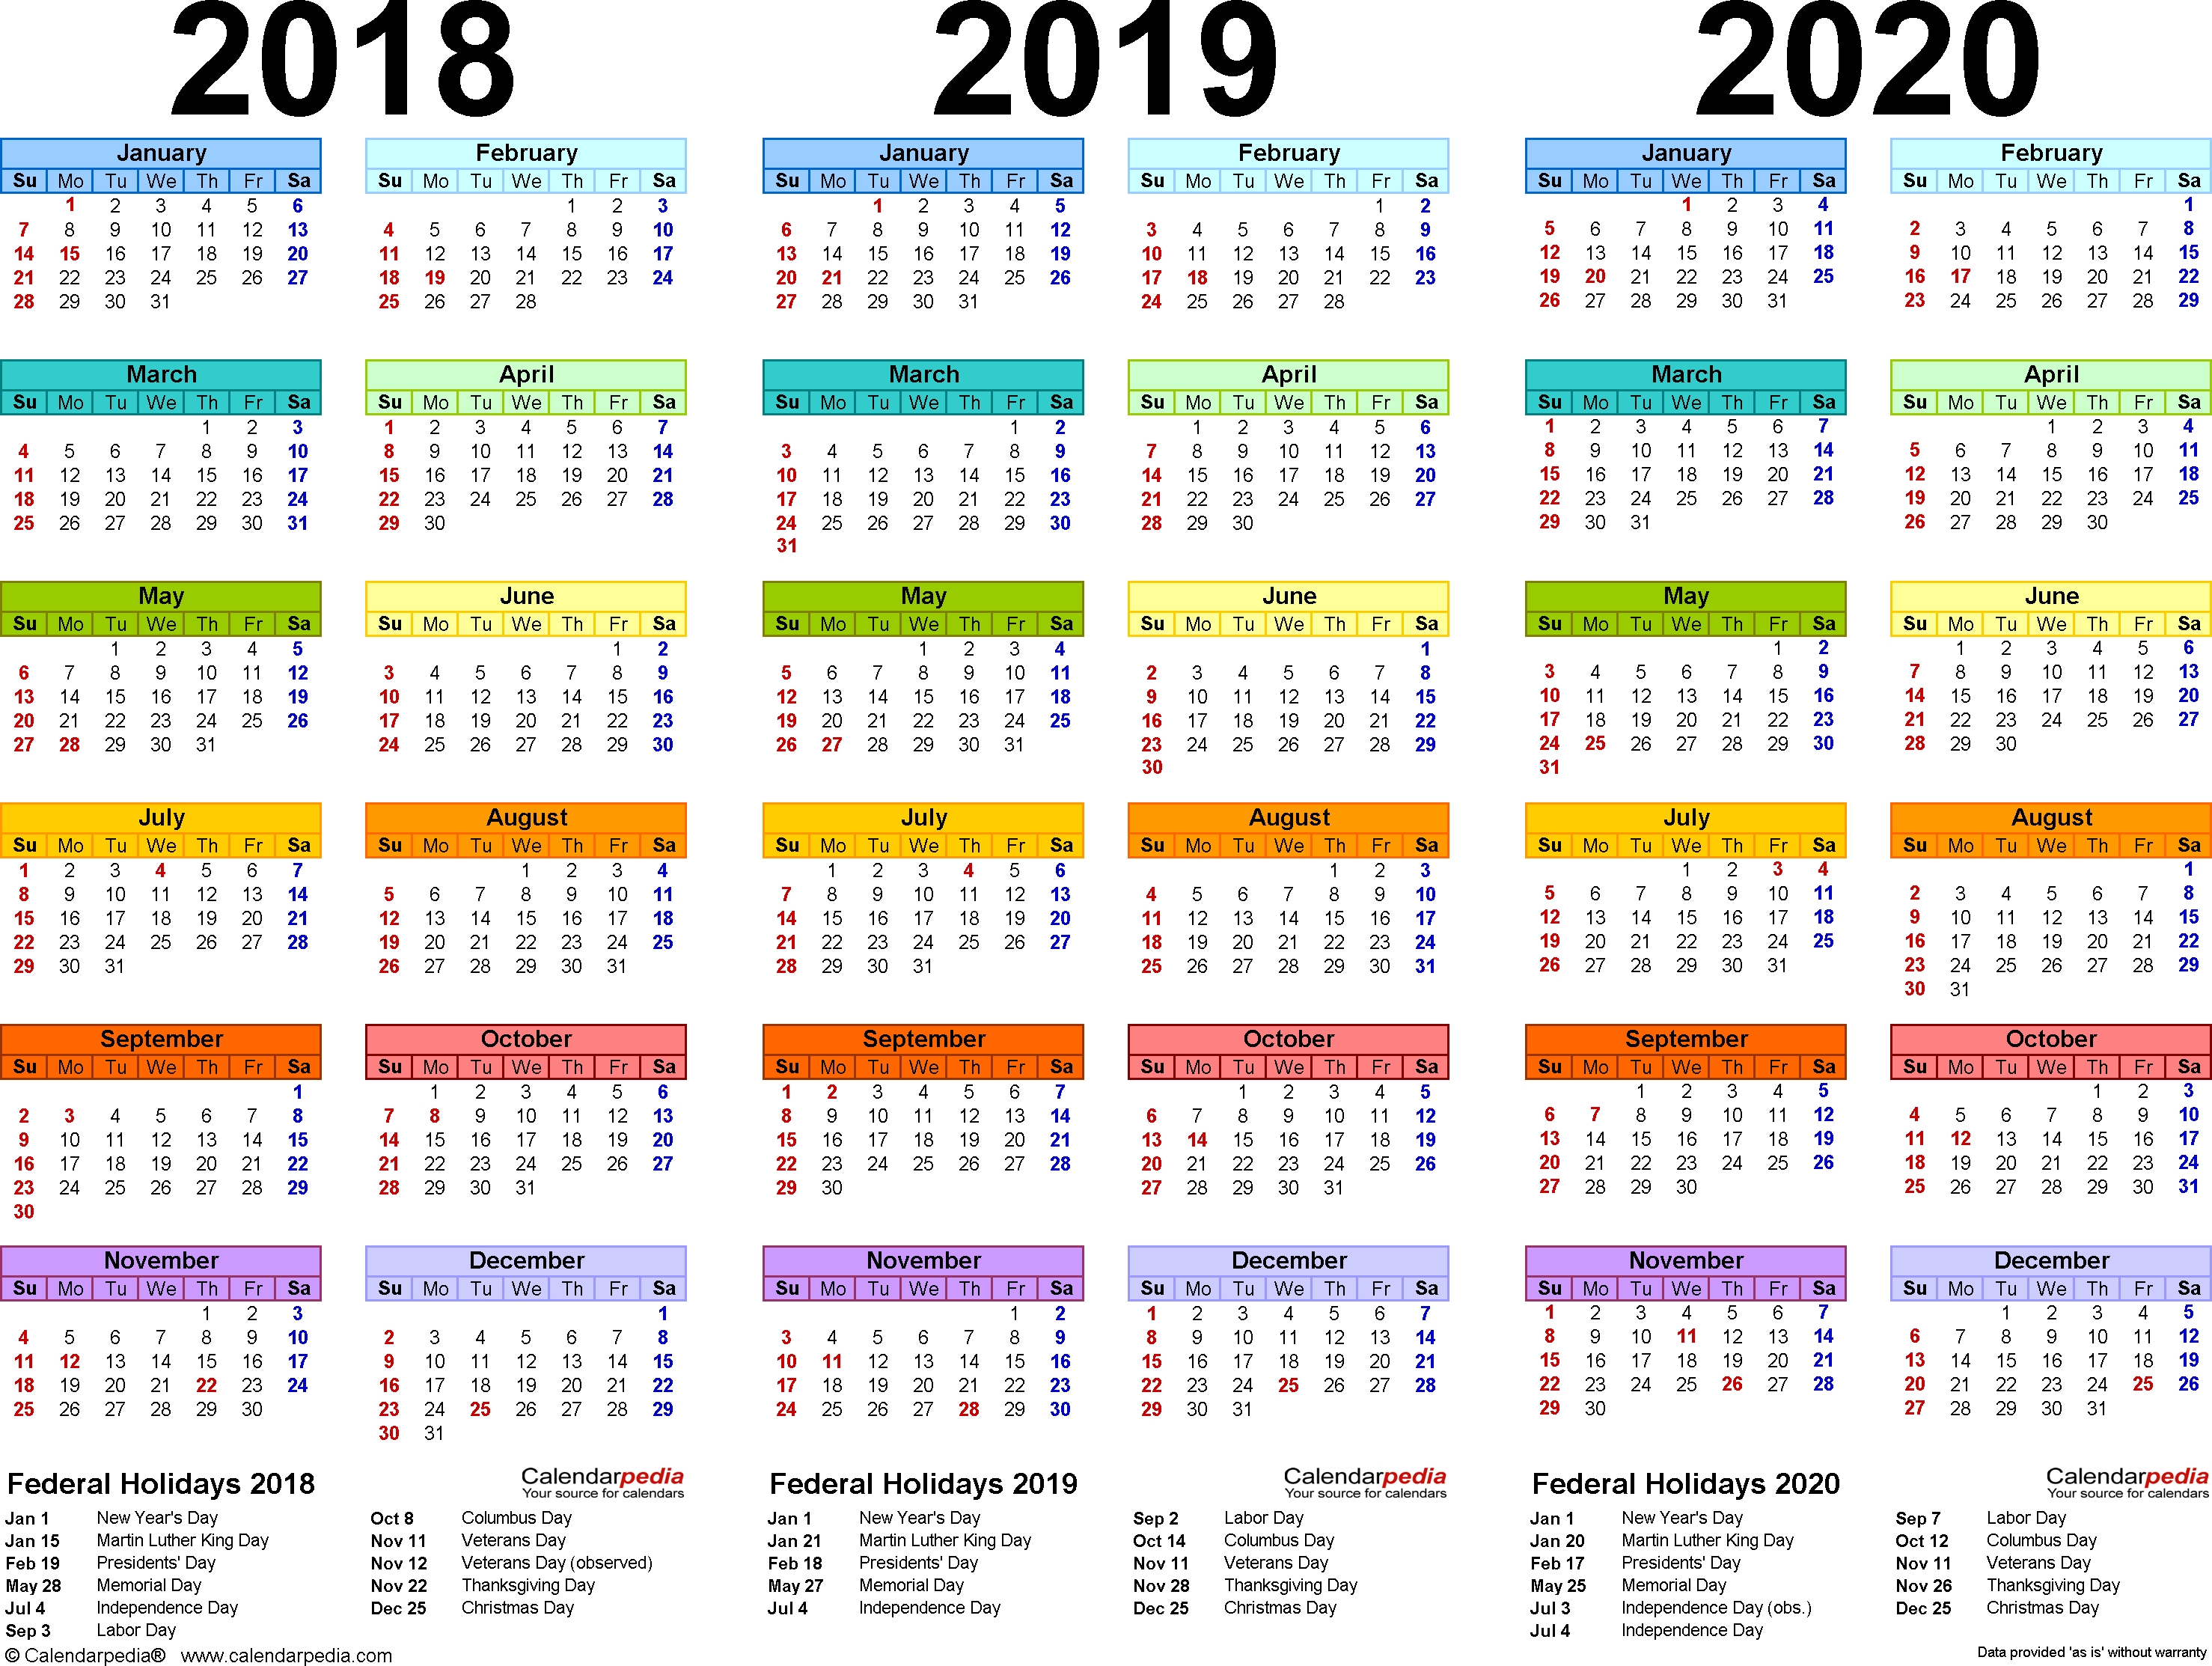 2019 Yearly Calendar - Free Download | Printable Calendar regarding Free Printable Perpetual Medicine Calendar